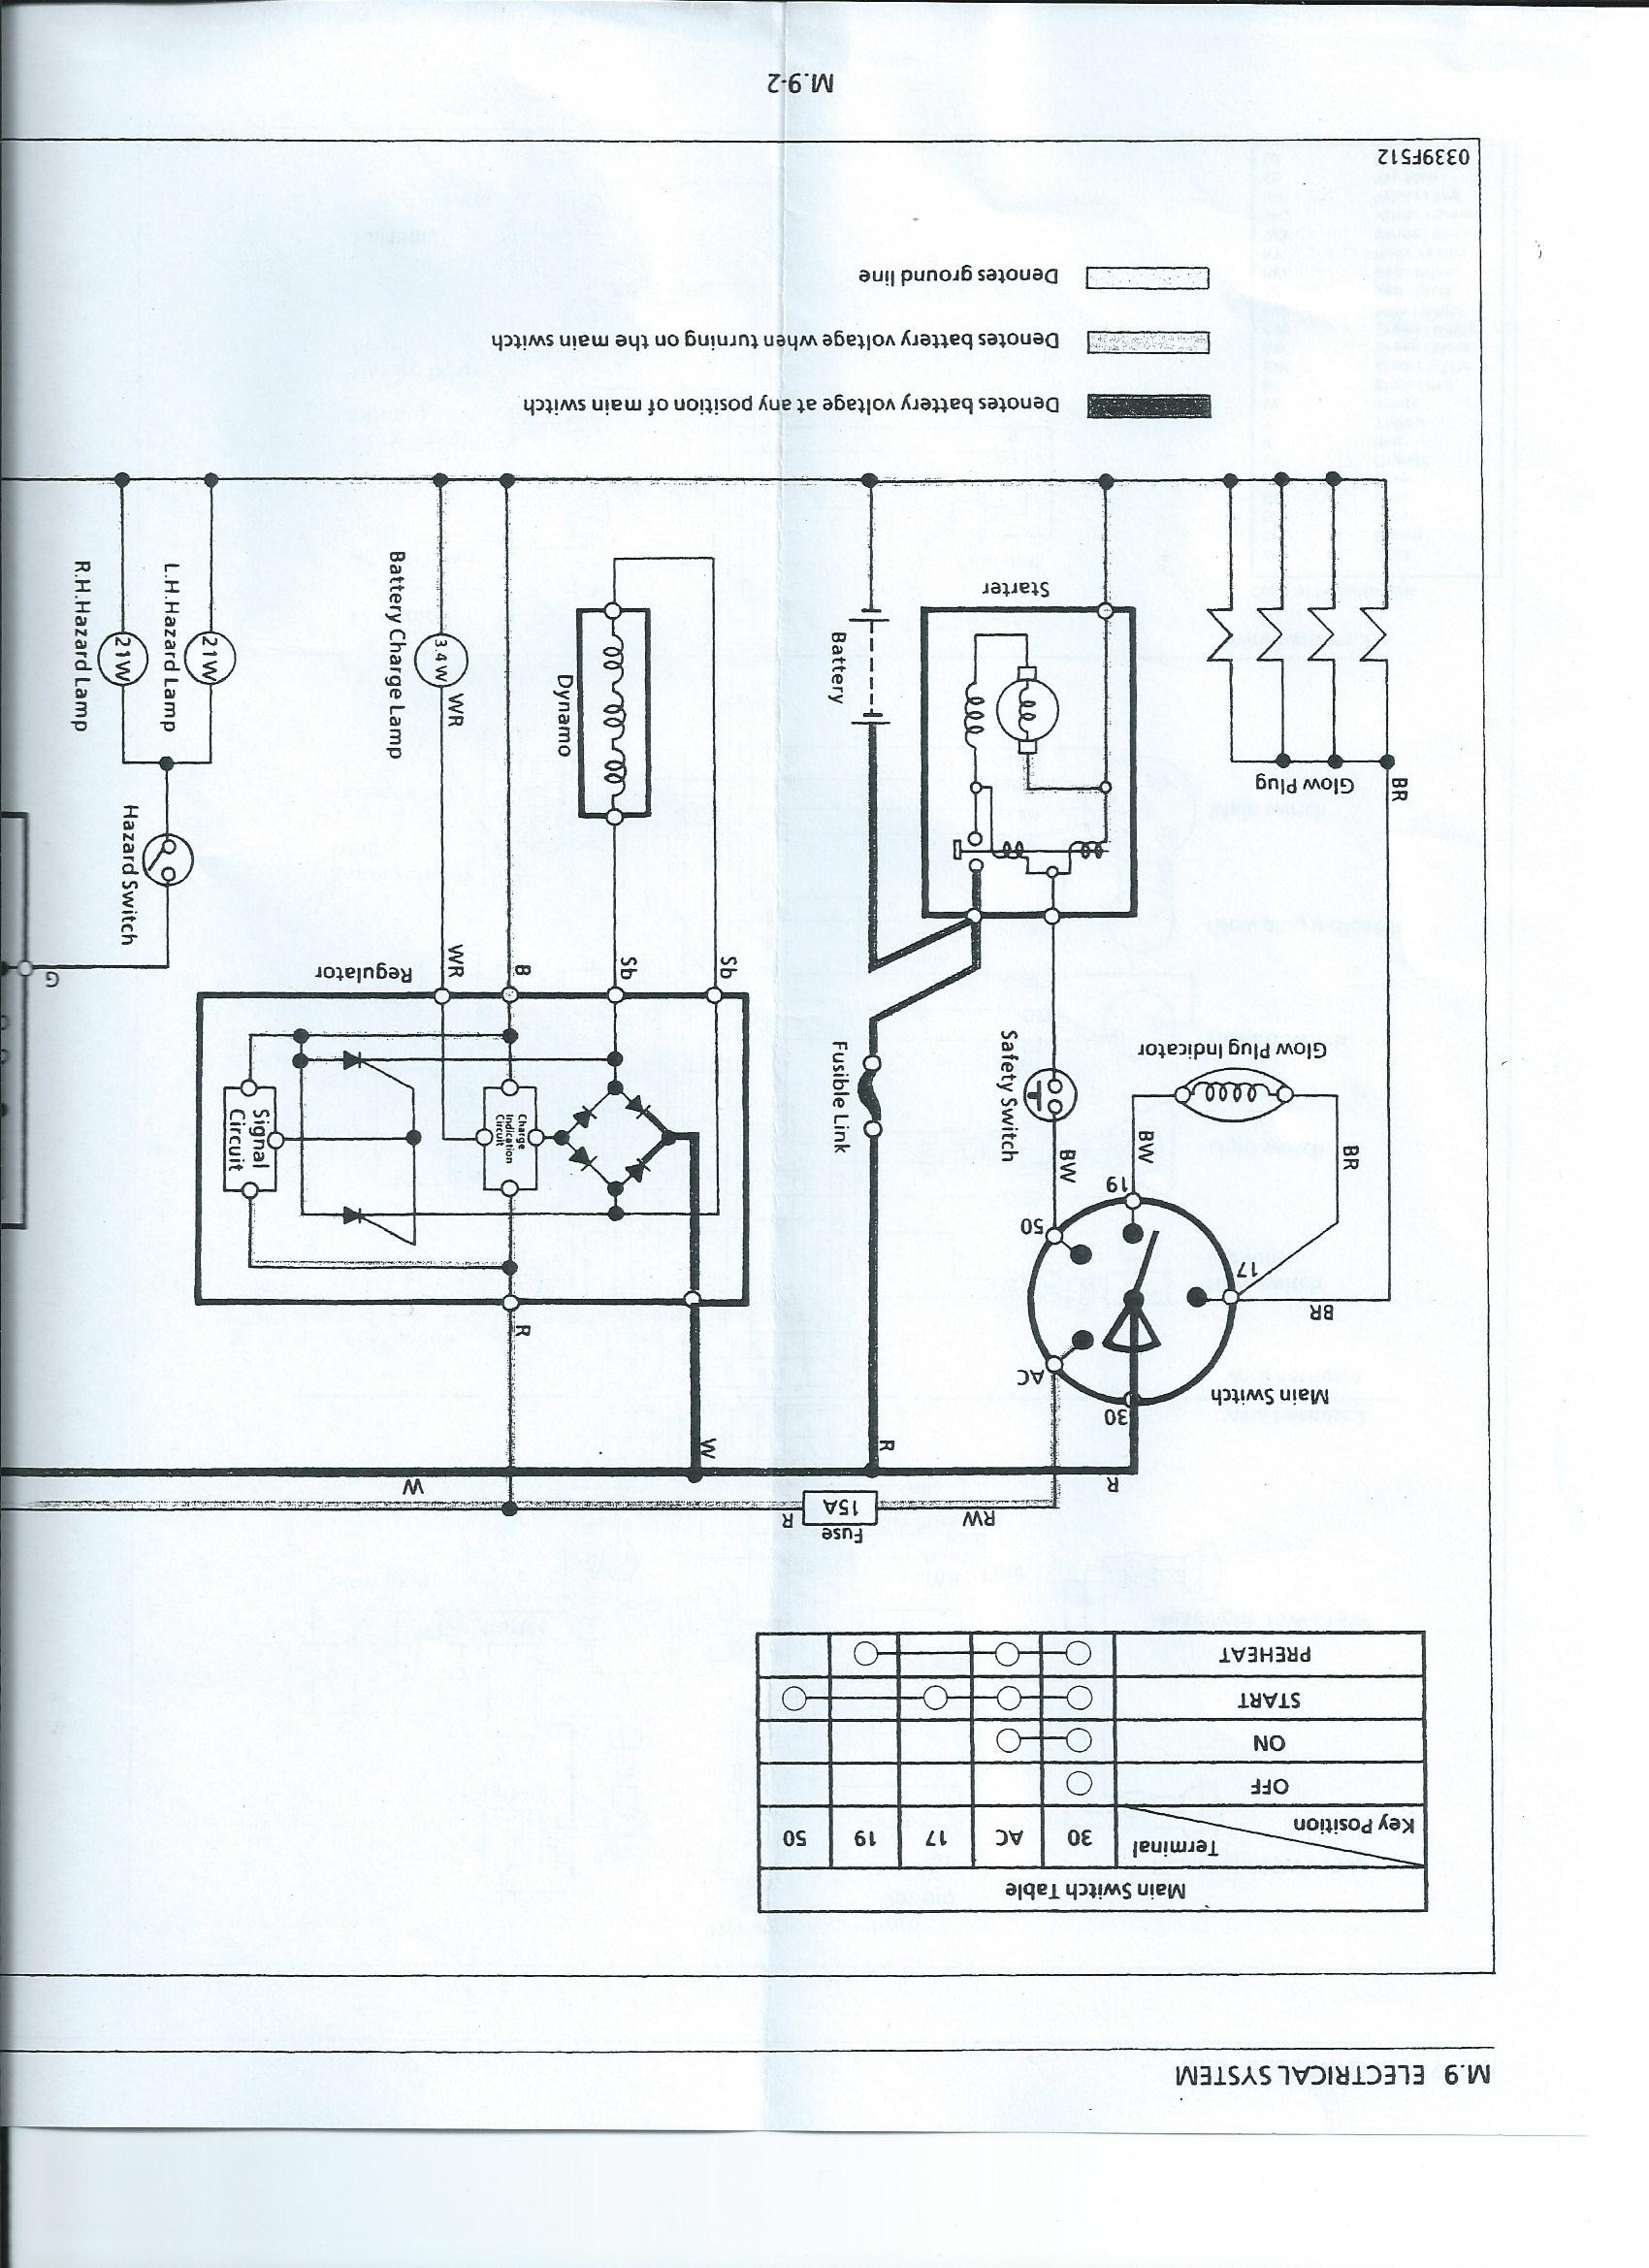 [SCHEMATICS_49CH]  WV_2762] M9540 Kubota Wiring Diagram Download Diagram | Kubota Tractor Wiring Diagrams Free Download Diagram |  | Eachi Rous Exxlu Puti Mohammedshrine Librar Wiring 101